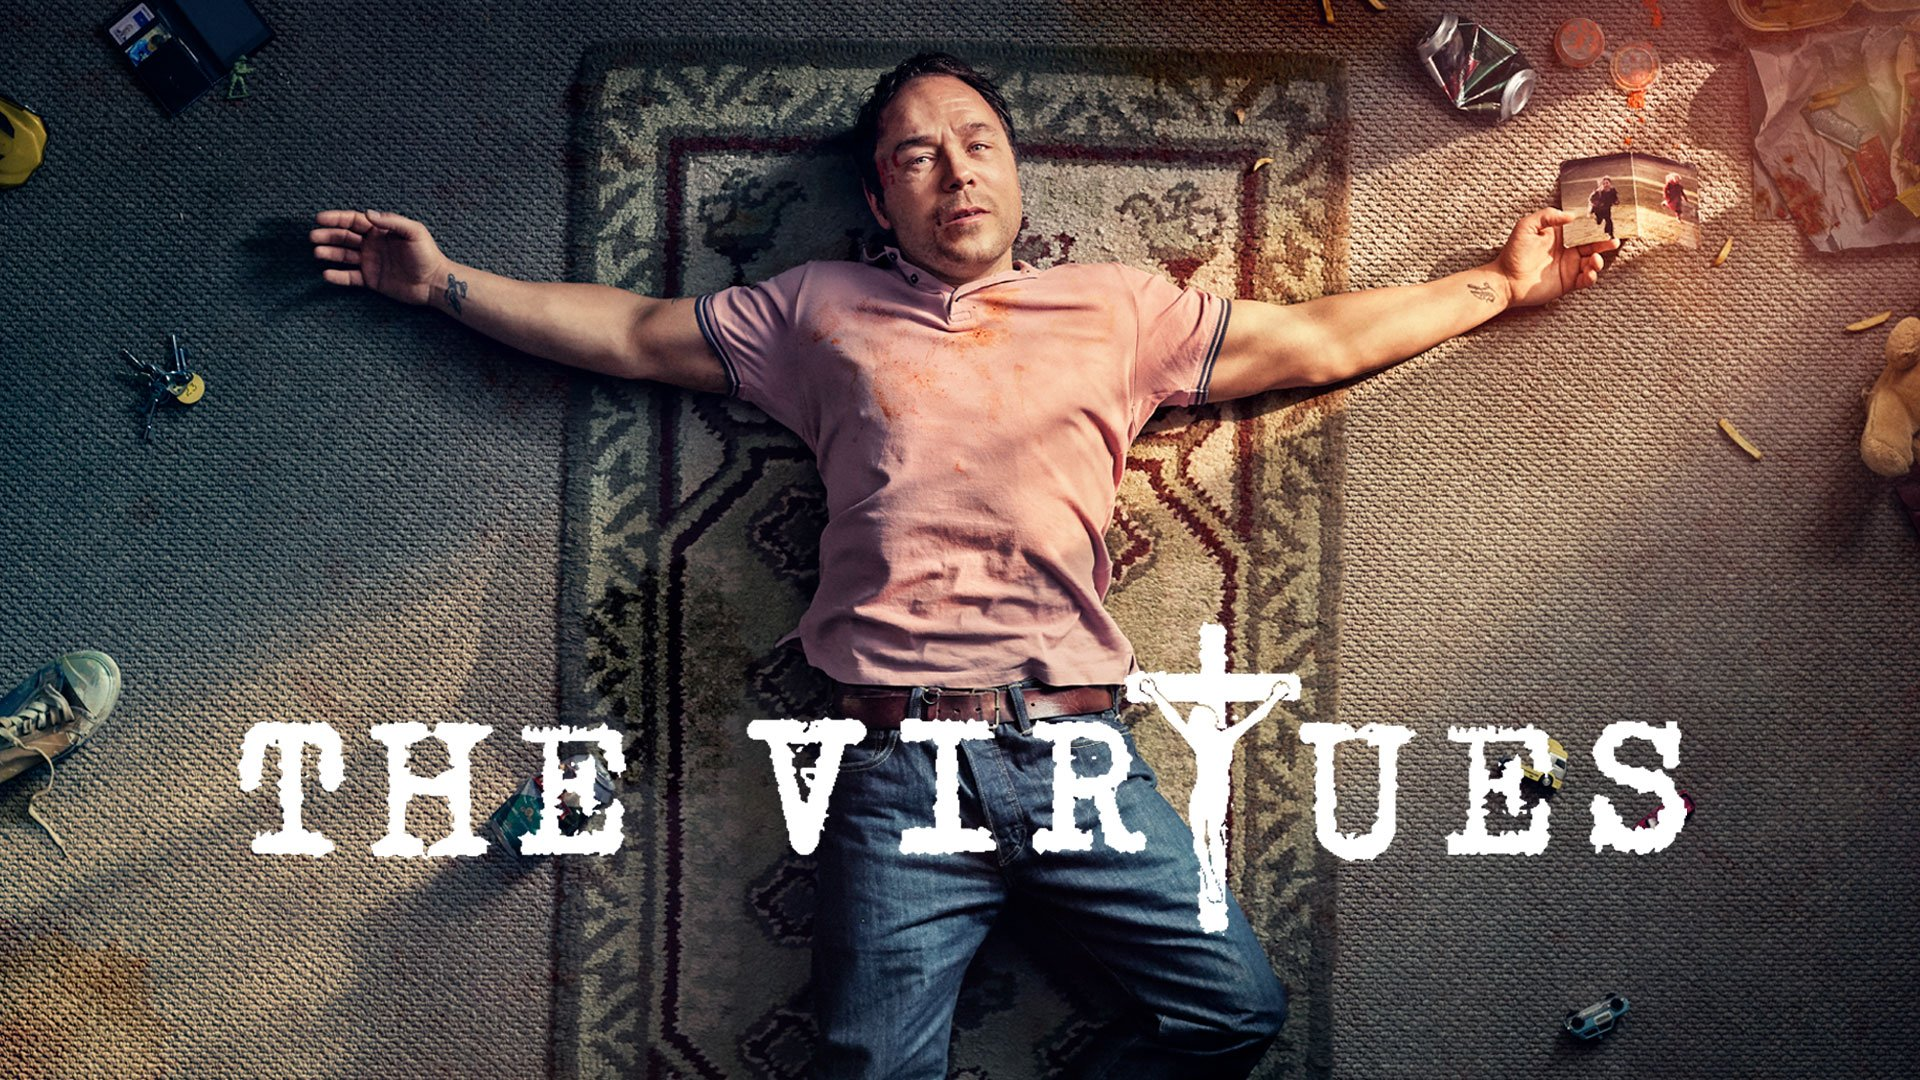 The virtues, Channel 4, Shane Meadows, Jack Thornes, Filmin